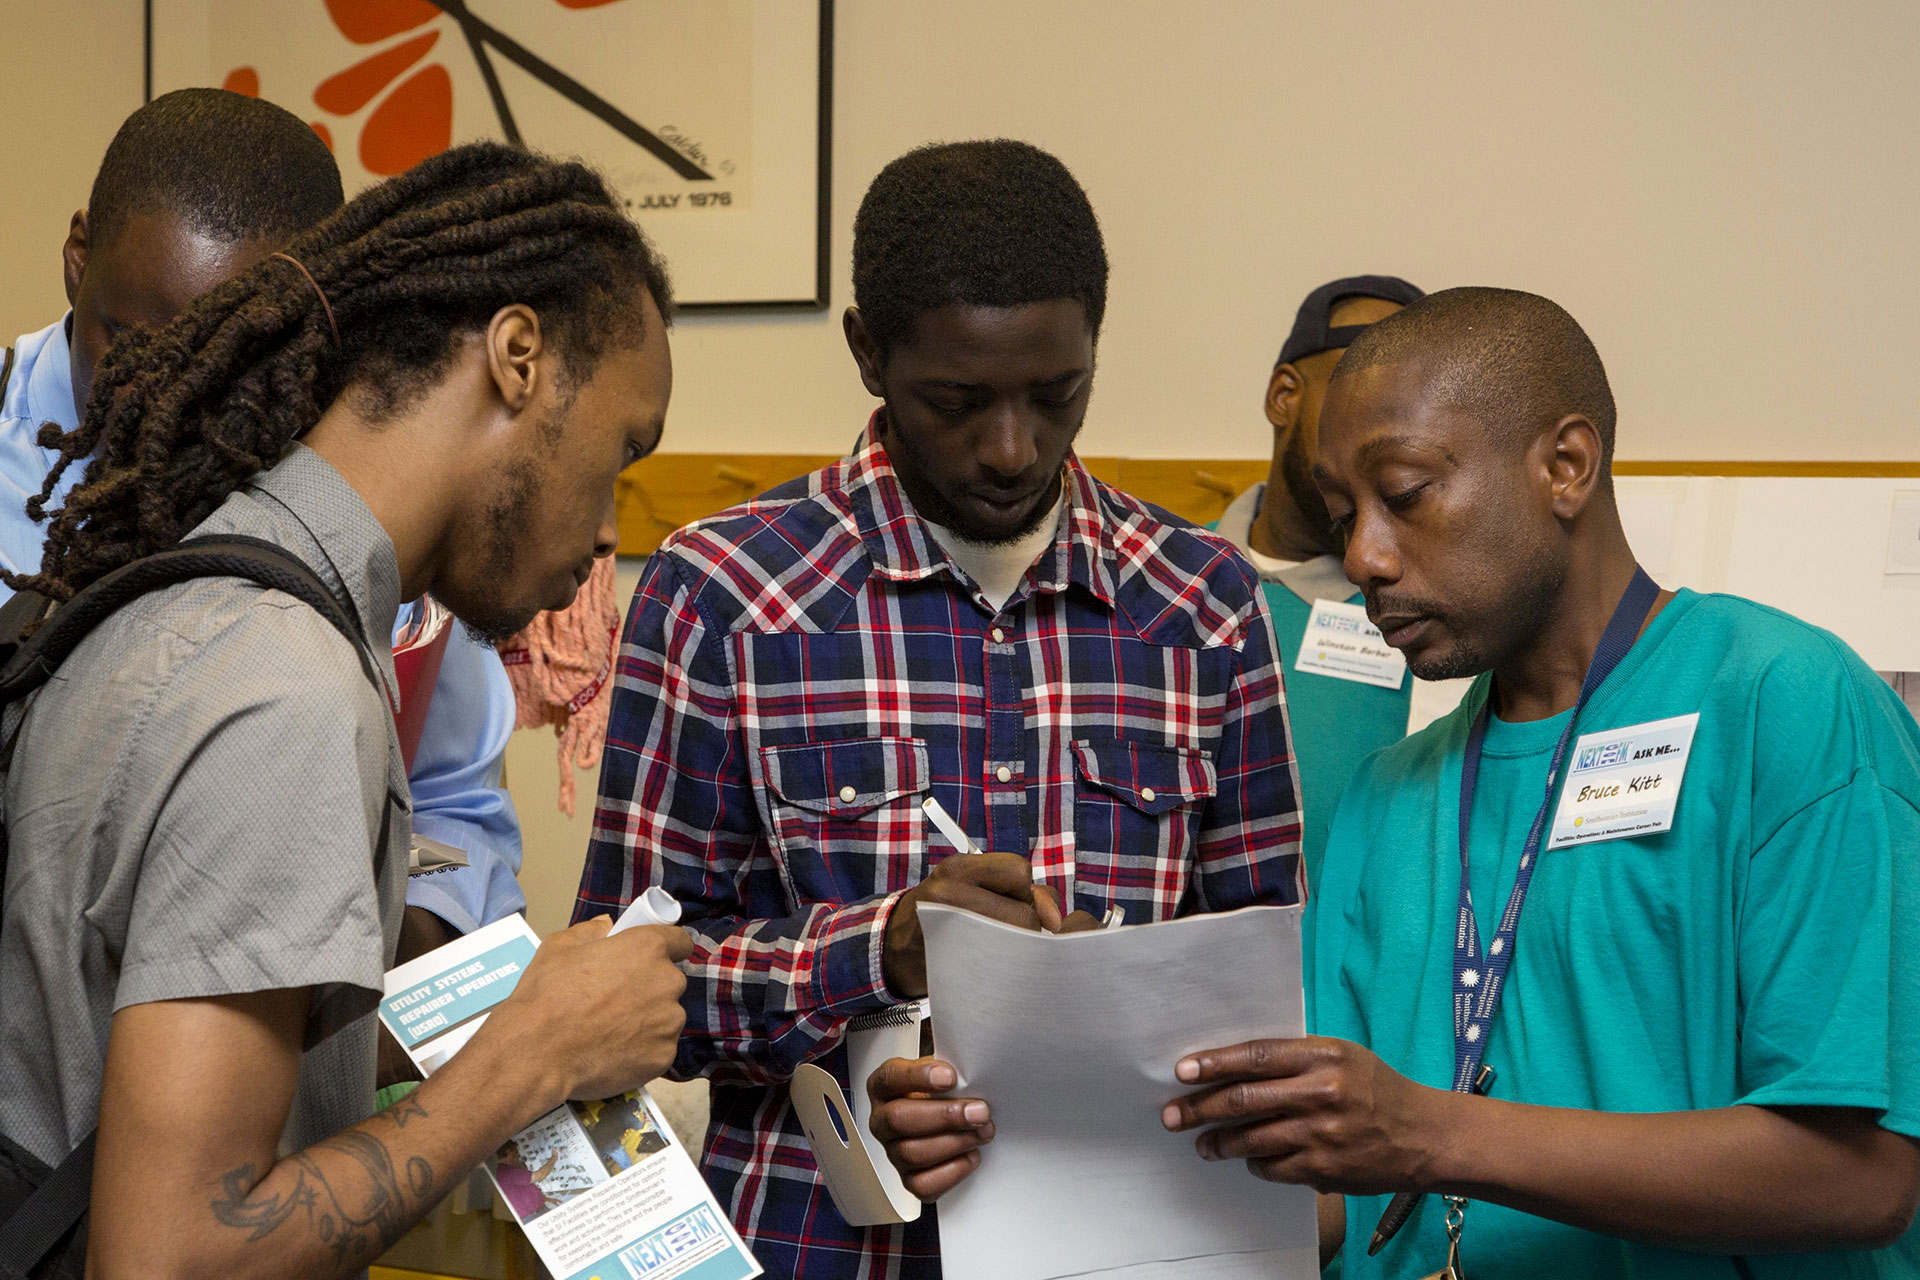 Checking a schedule at the OFMR Career Fair 2014